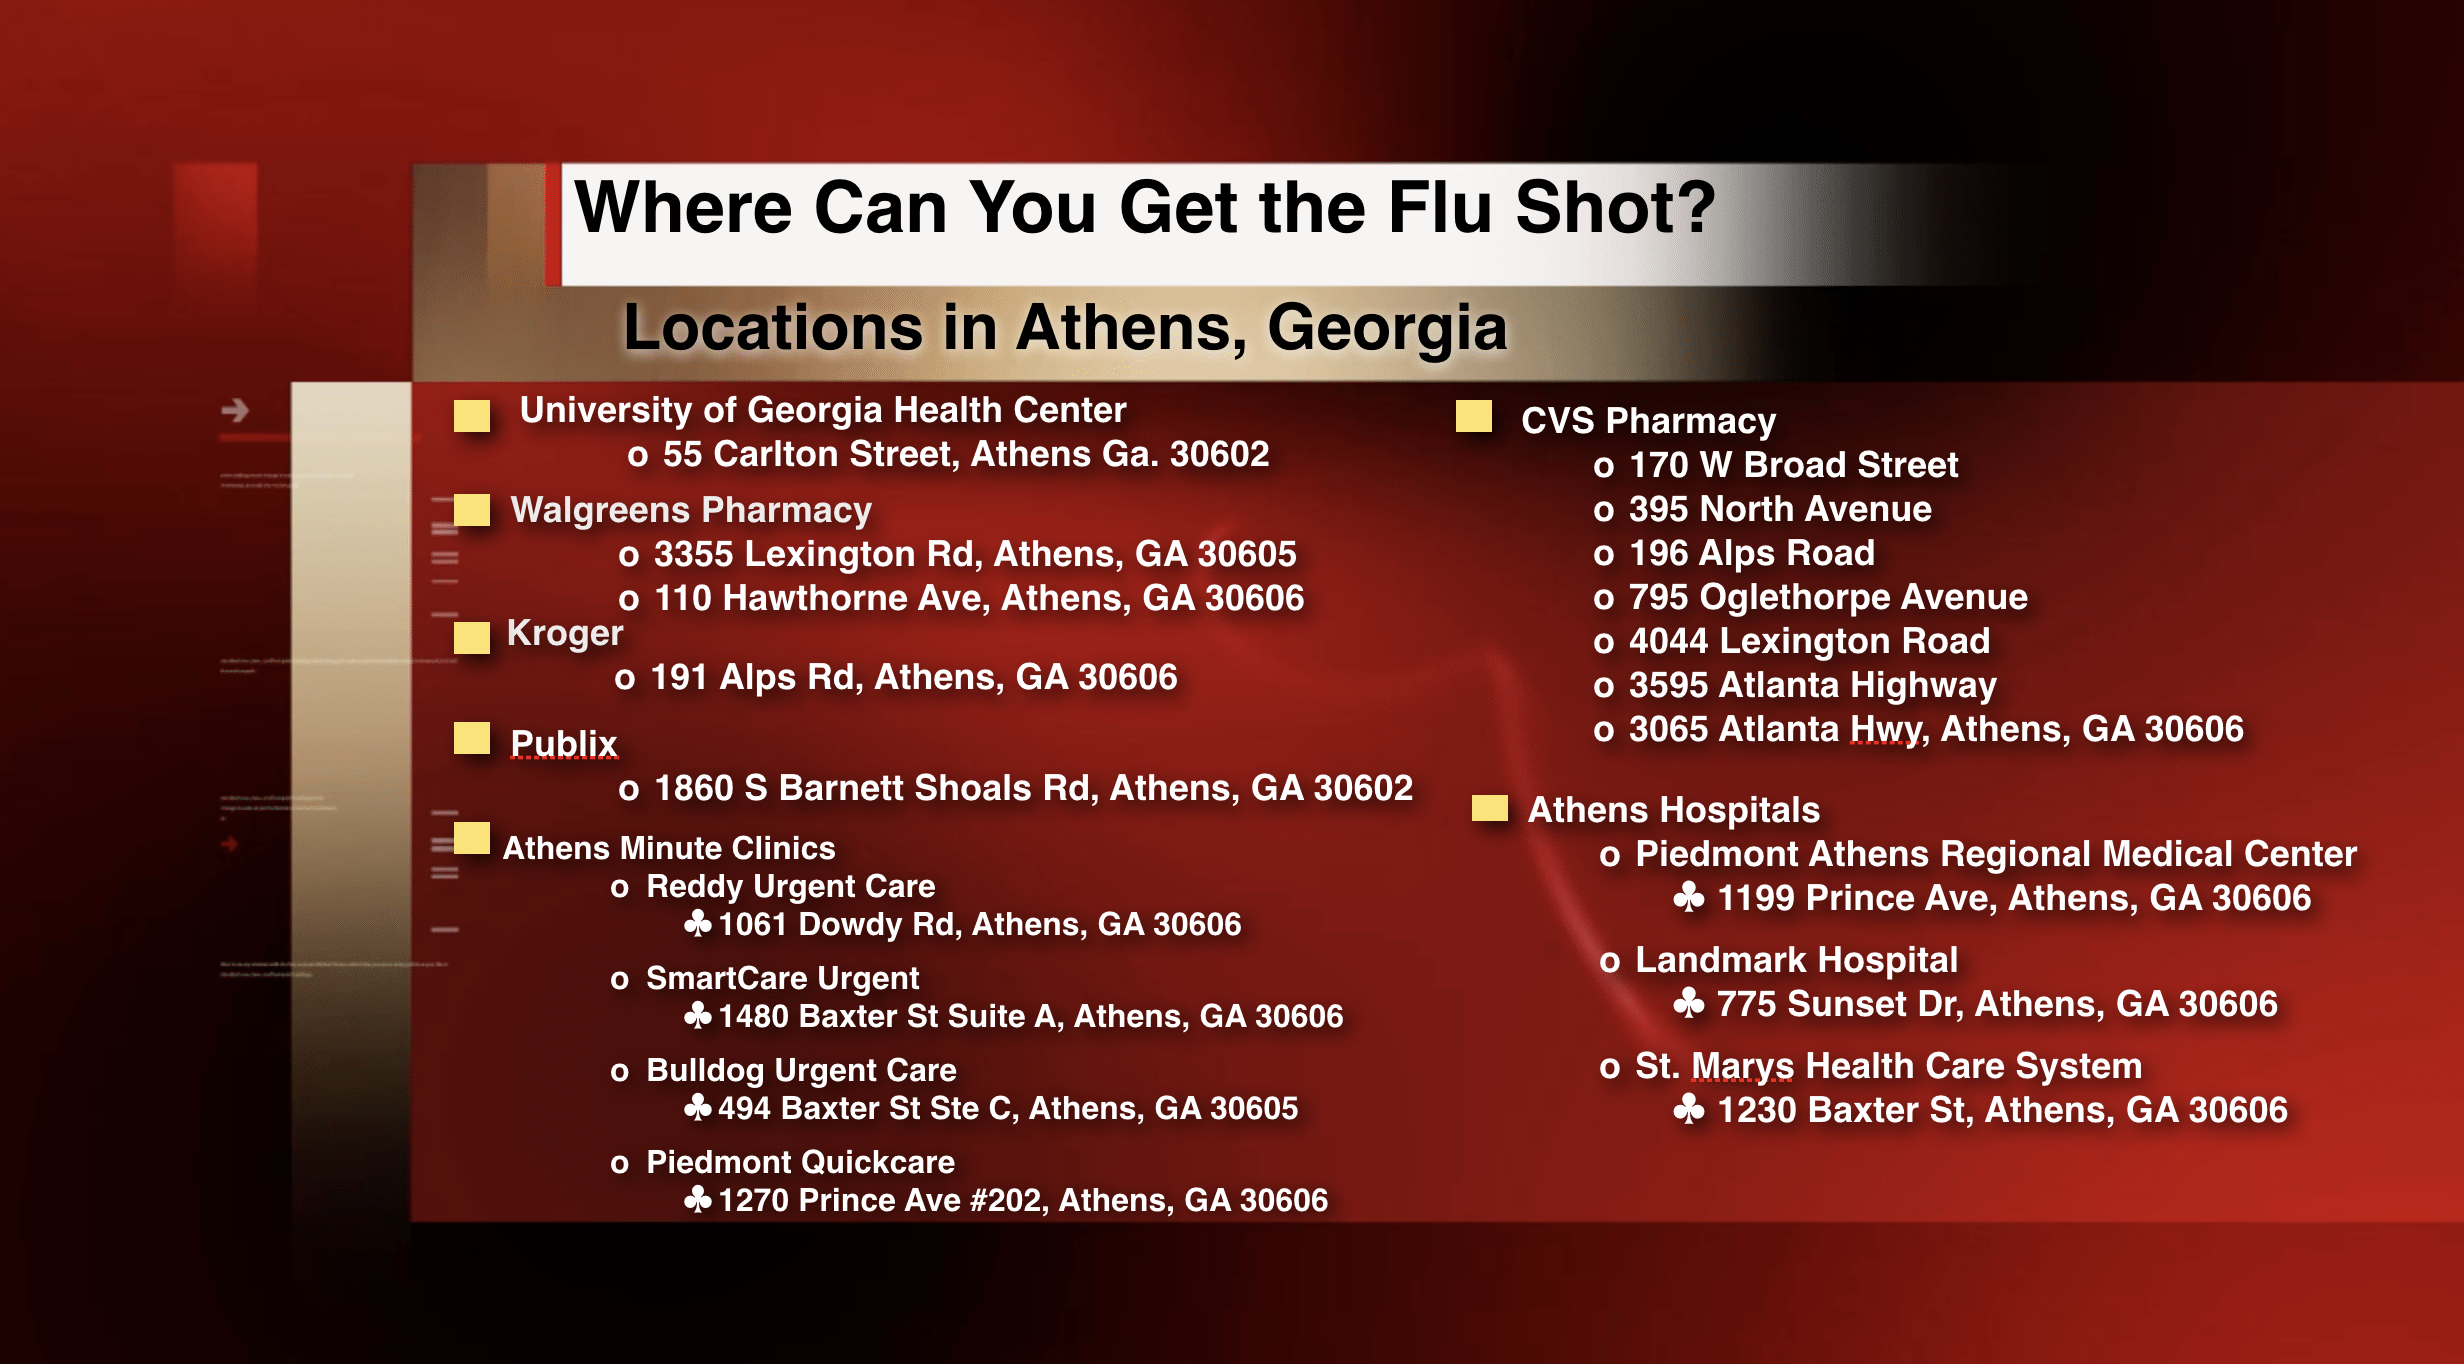 Where Can You Get a Flu Shot?